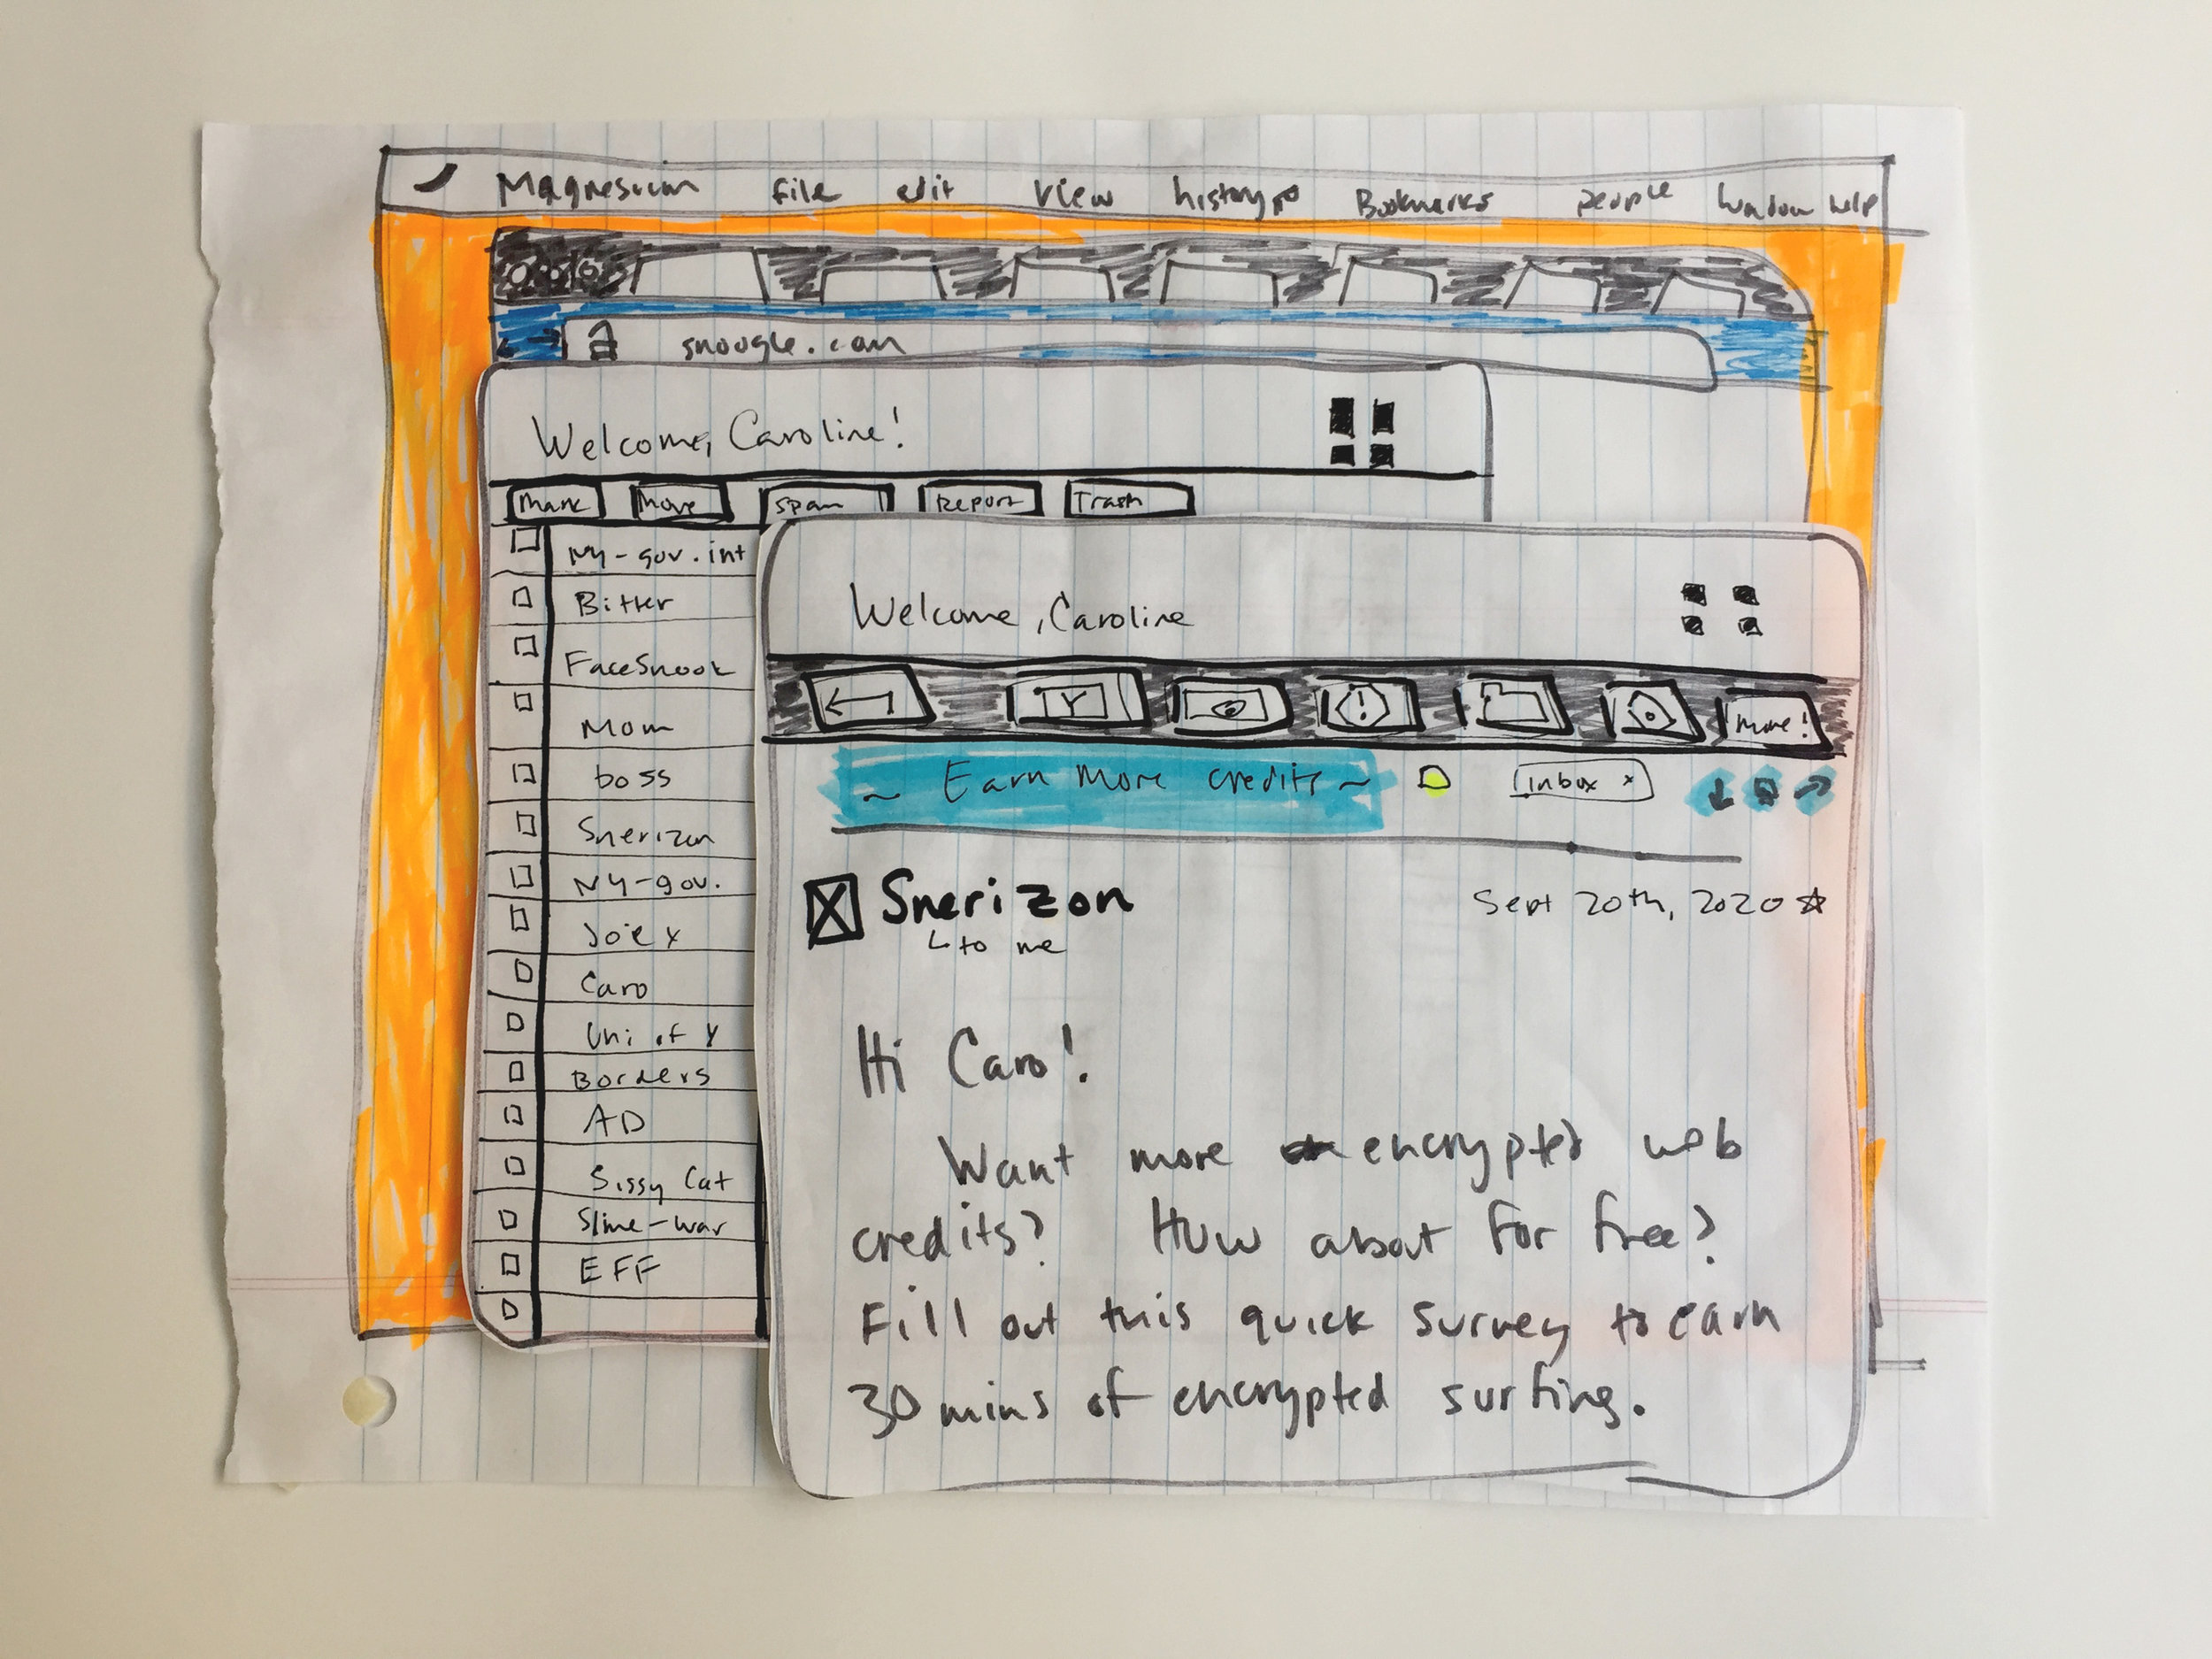 Paper prototypes of assets, narrative, and UI.